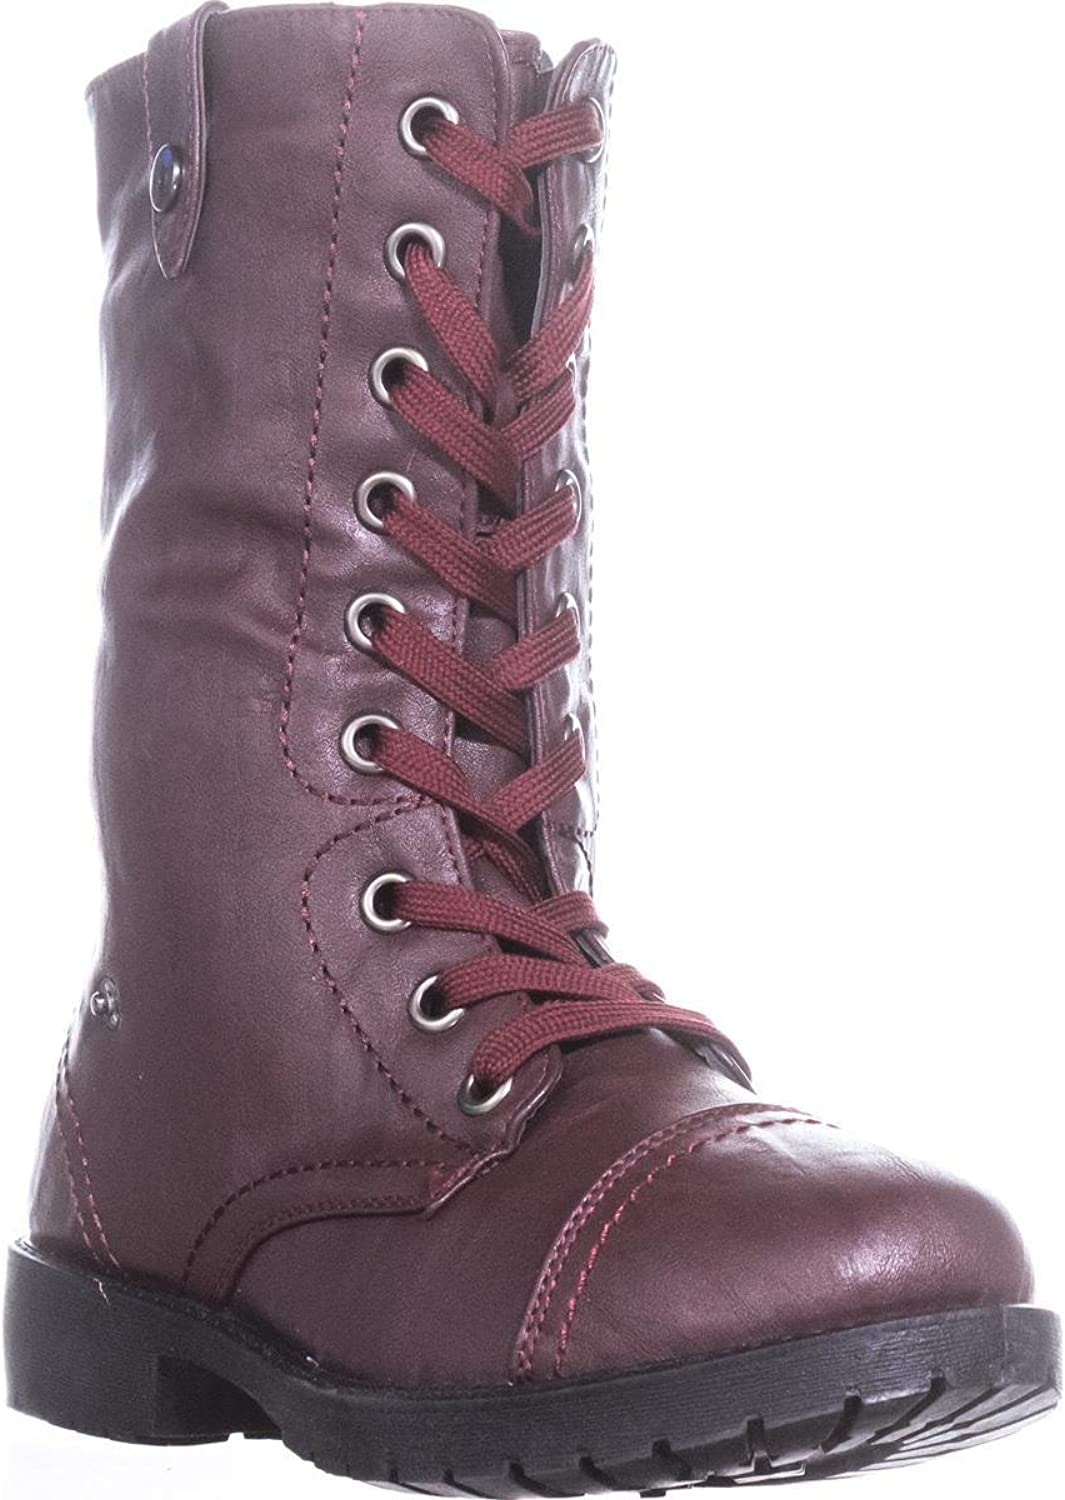 Wanted colorado Knit Combat Boots, Burgundy, 7 US